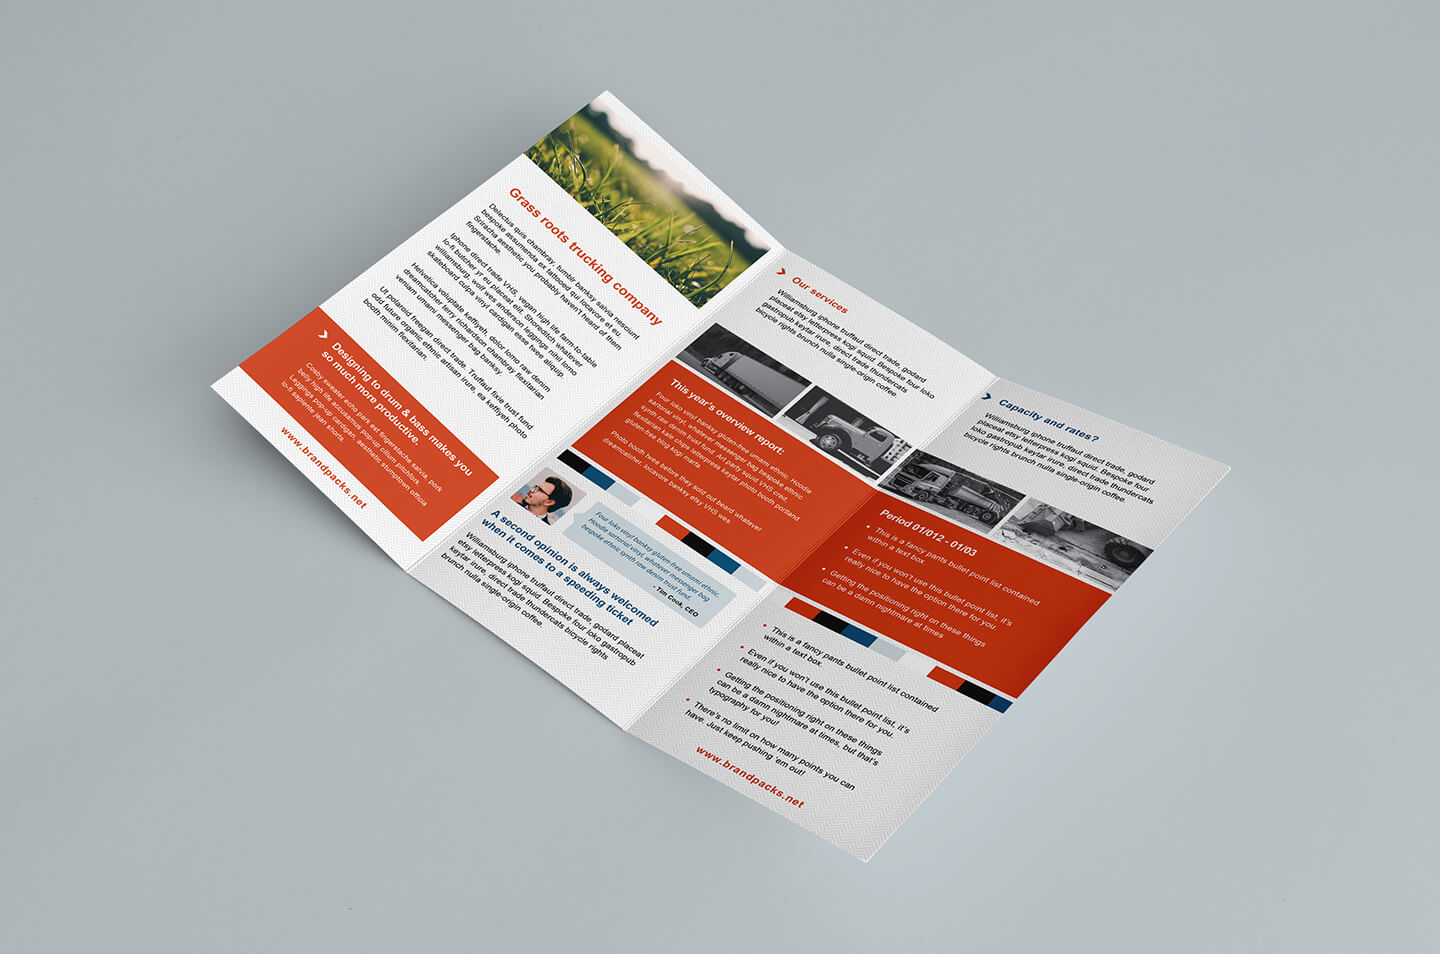 027 Tri Fold Brochure Template Free Download Ai Psd Trifold Within Brochure Templates Ai Free Download